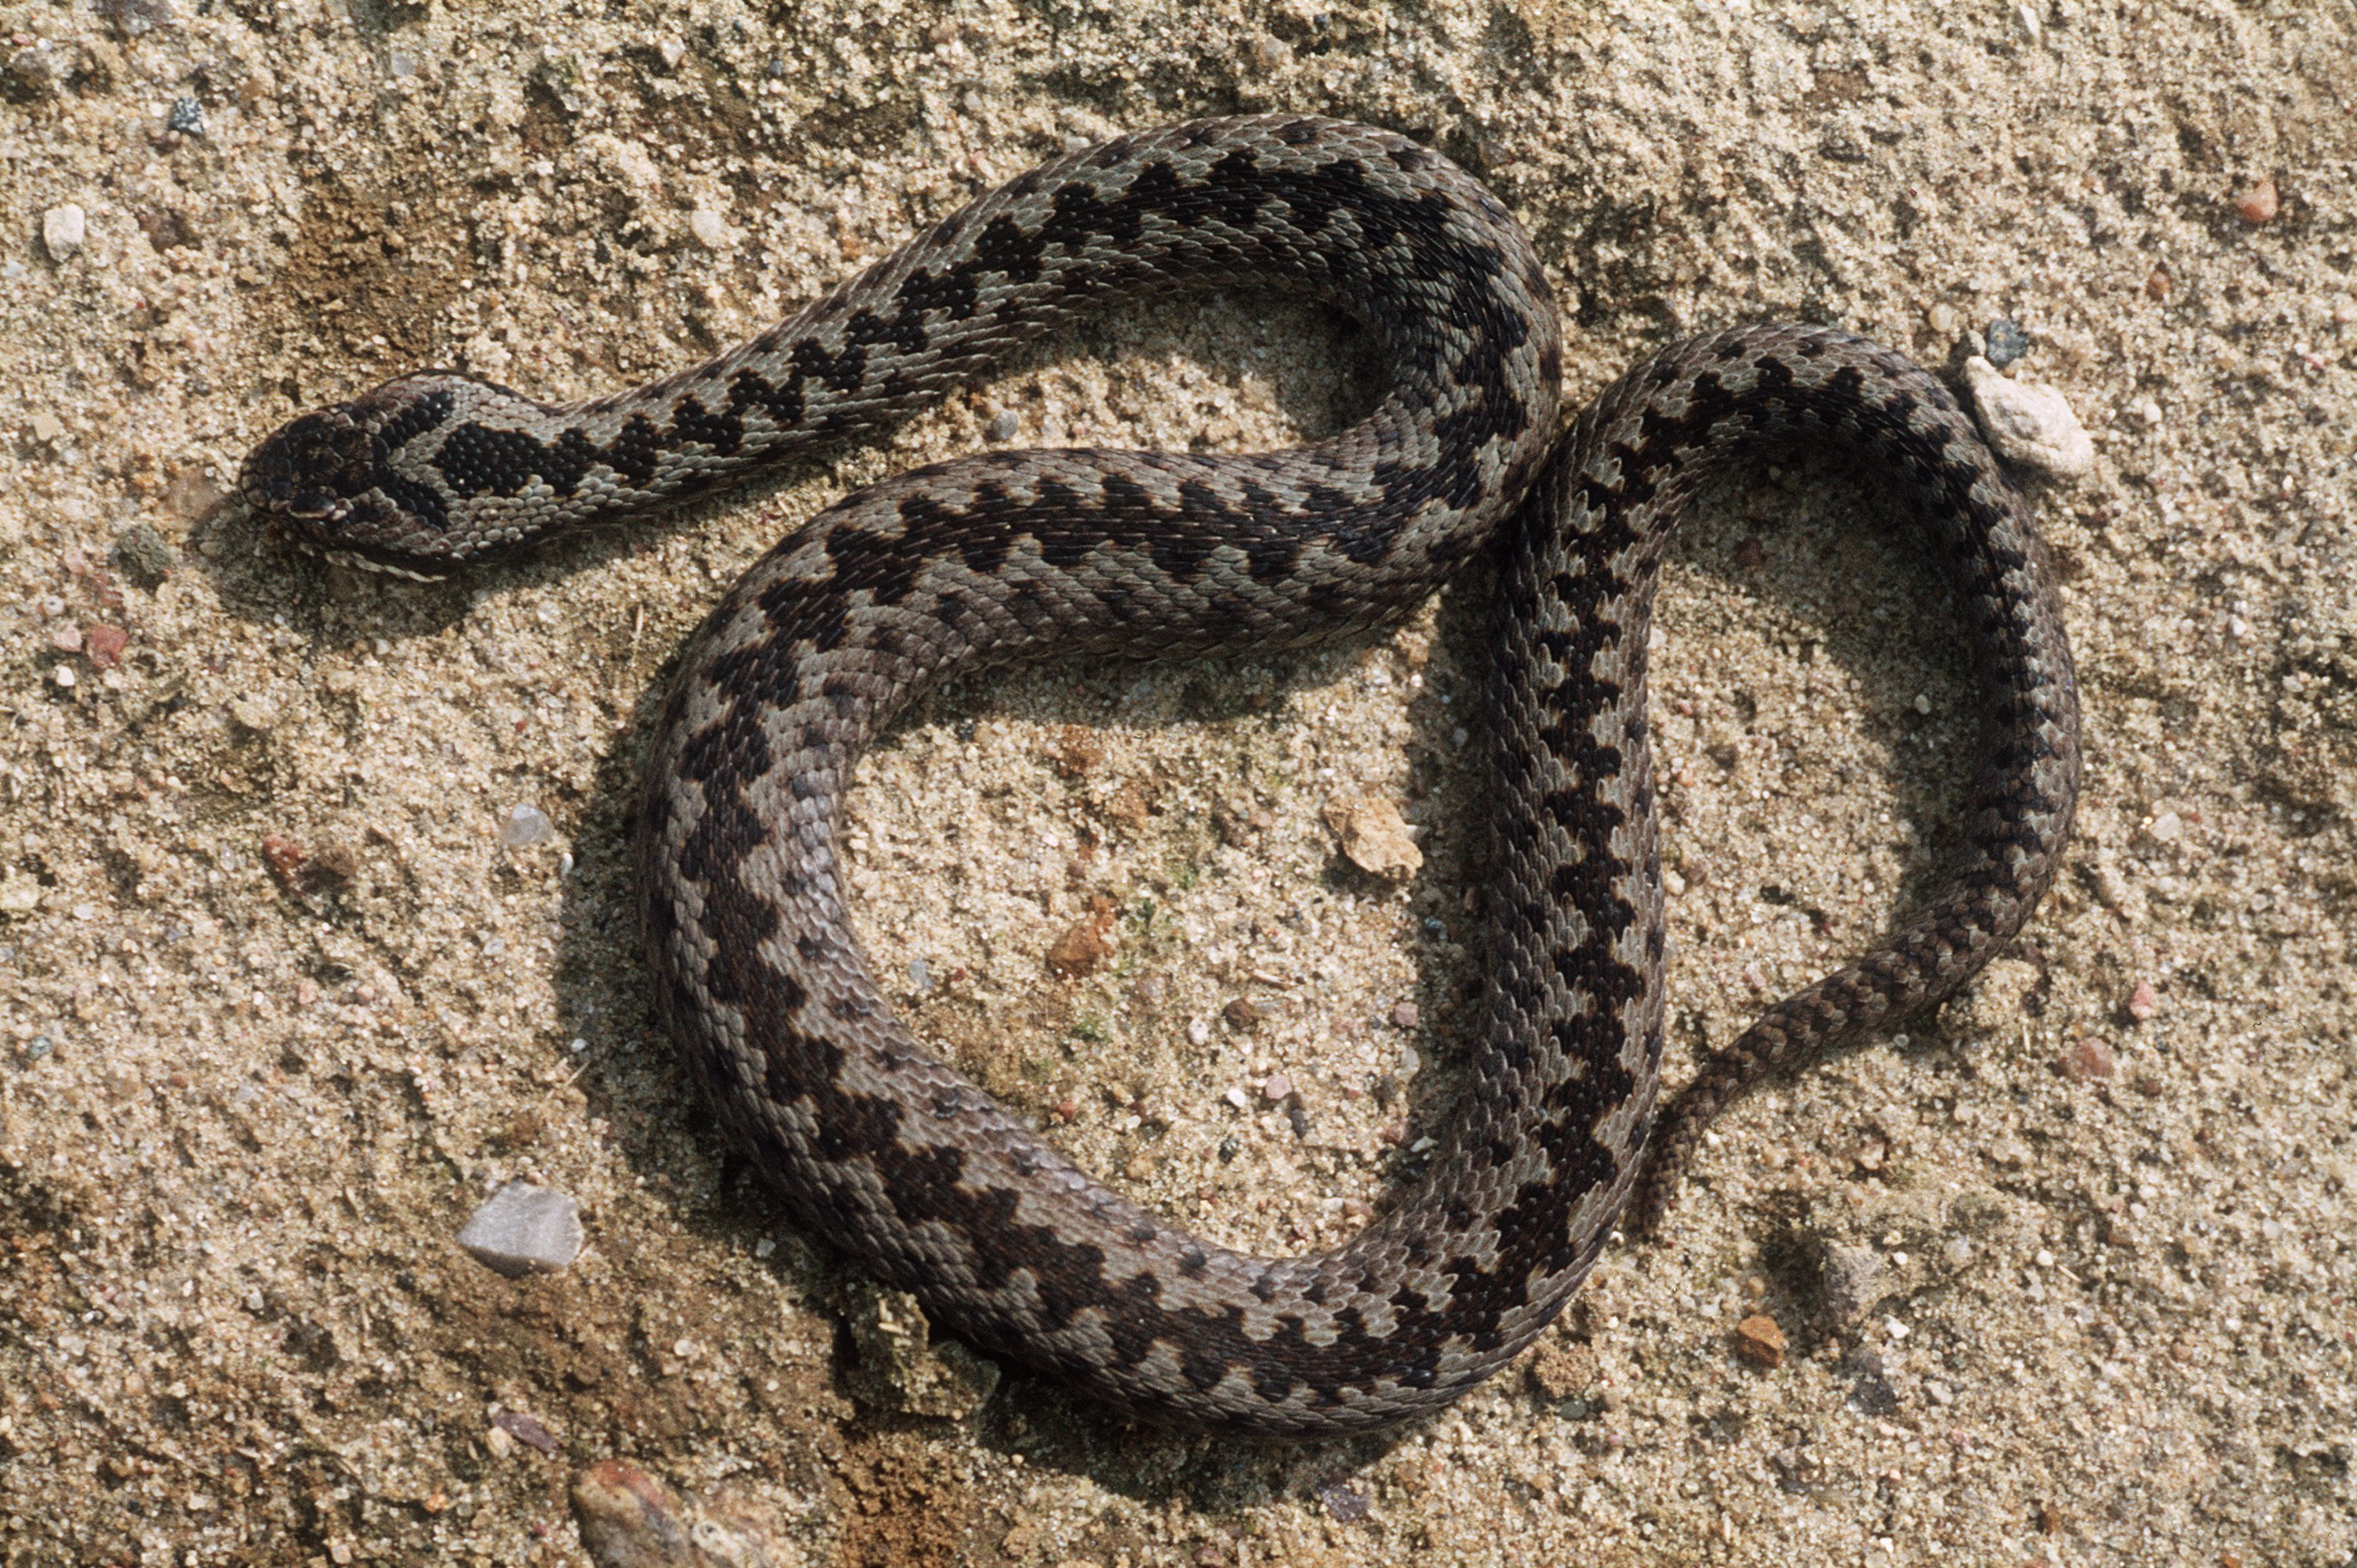 Snakes Are Invading UK Beaches And It's Ruined Beach Days Forever